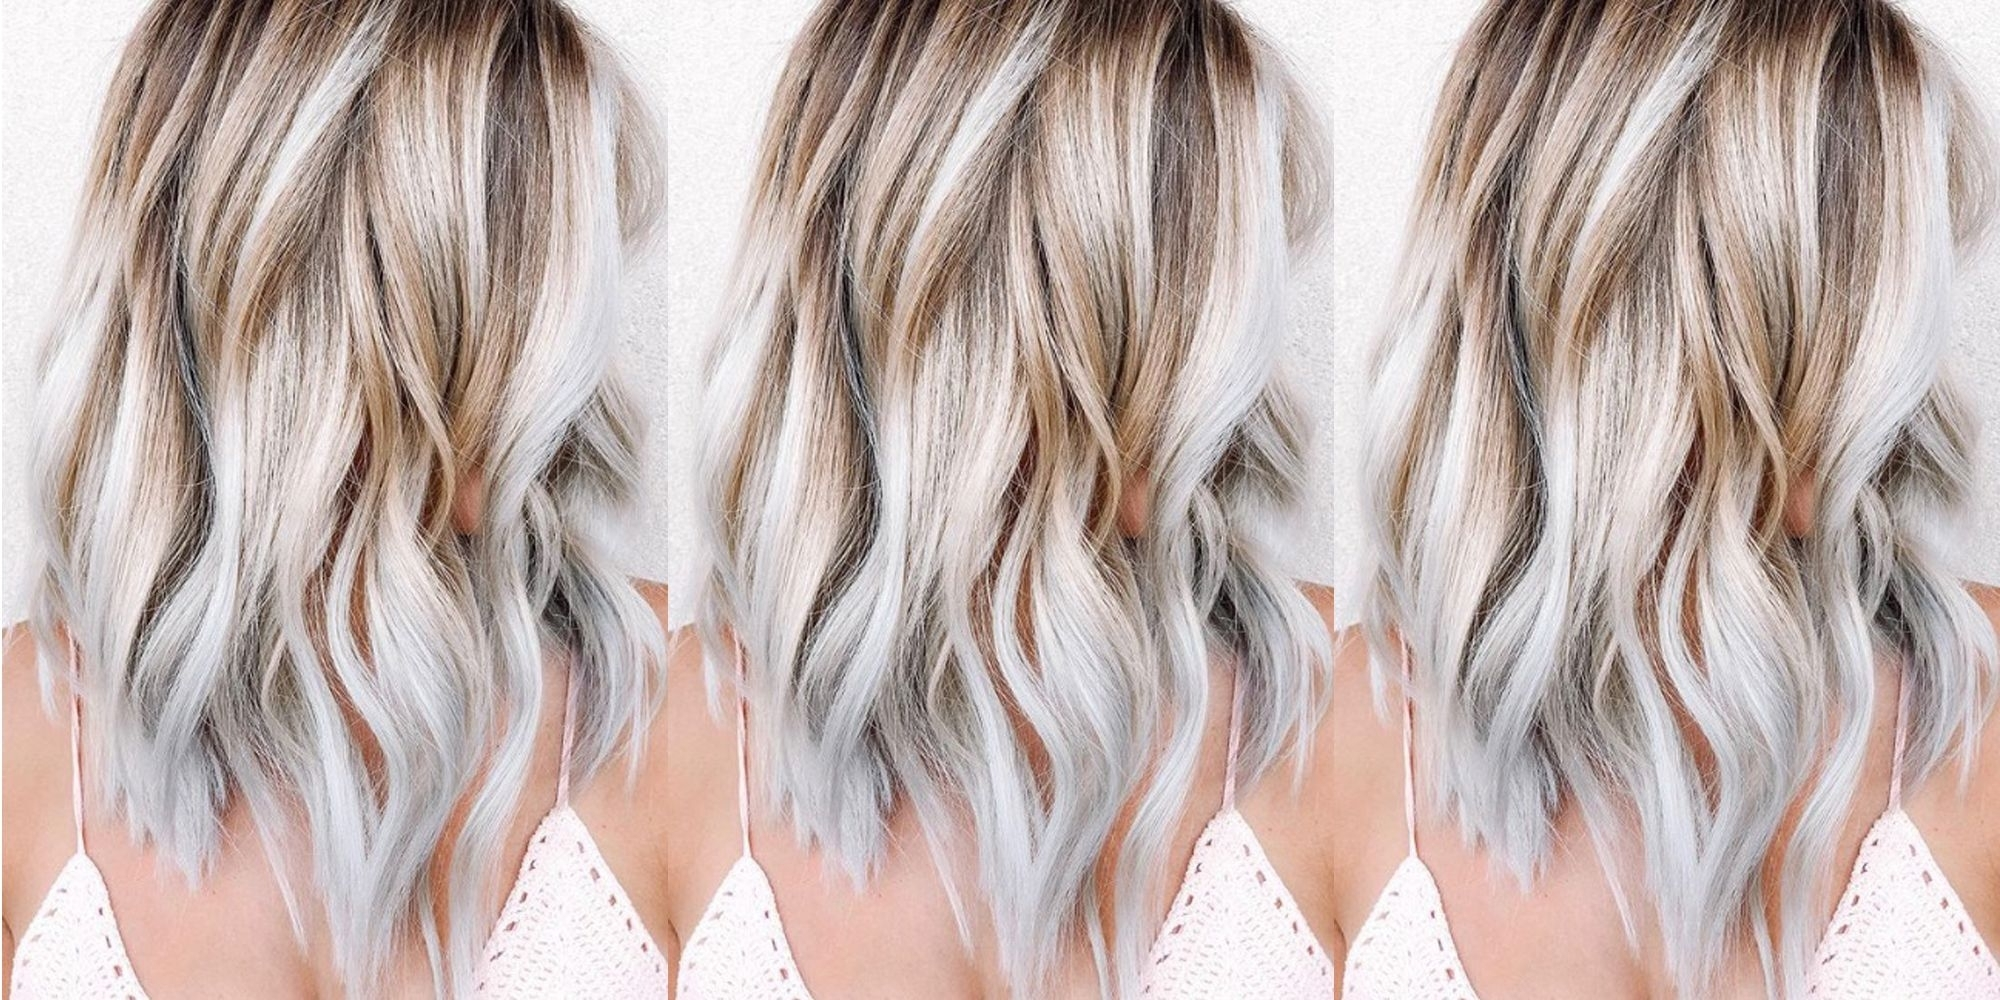 Well Liked Platinum Blonde Bob Hairstyles With Exposed Roots Inside 7 Blonde Hair Trends For Summer 2018 – New Ways To Try Blonde Hair (View 17 of 20)